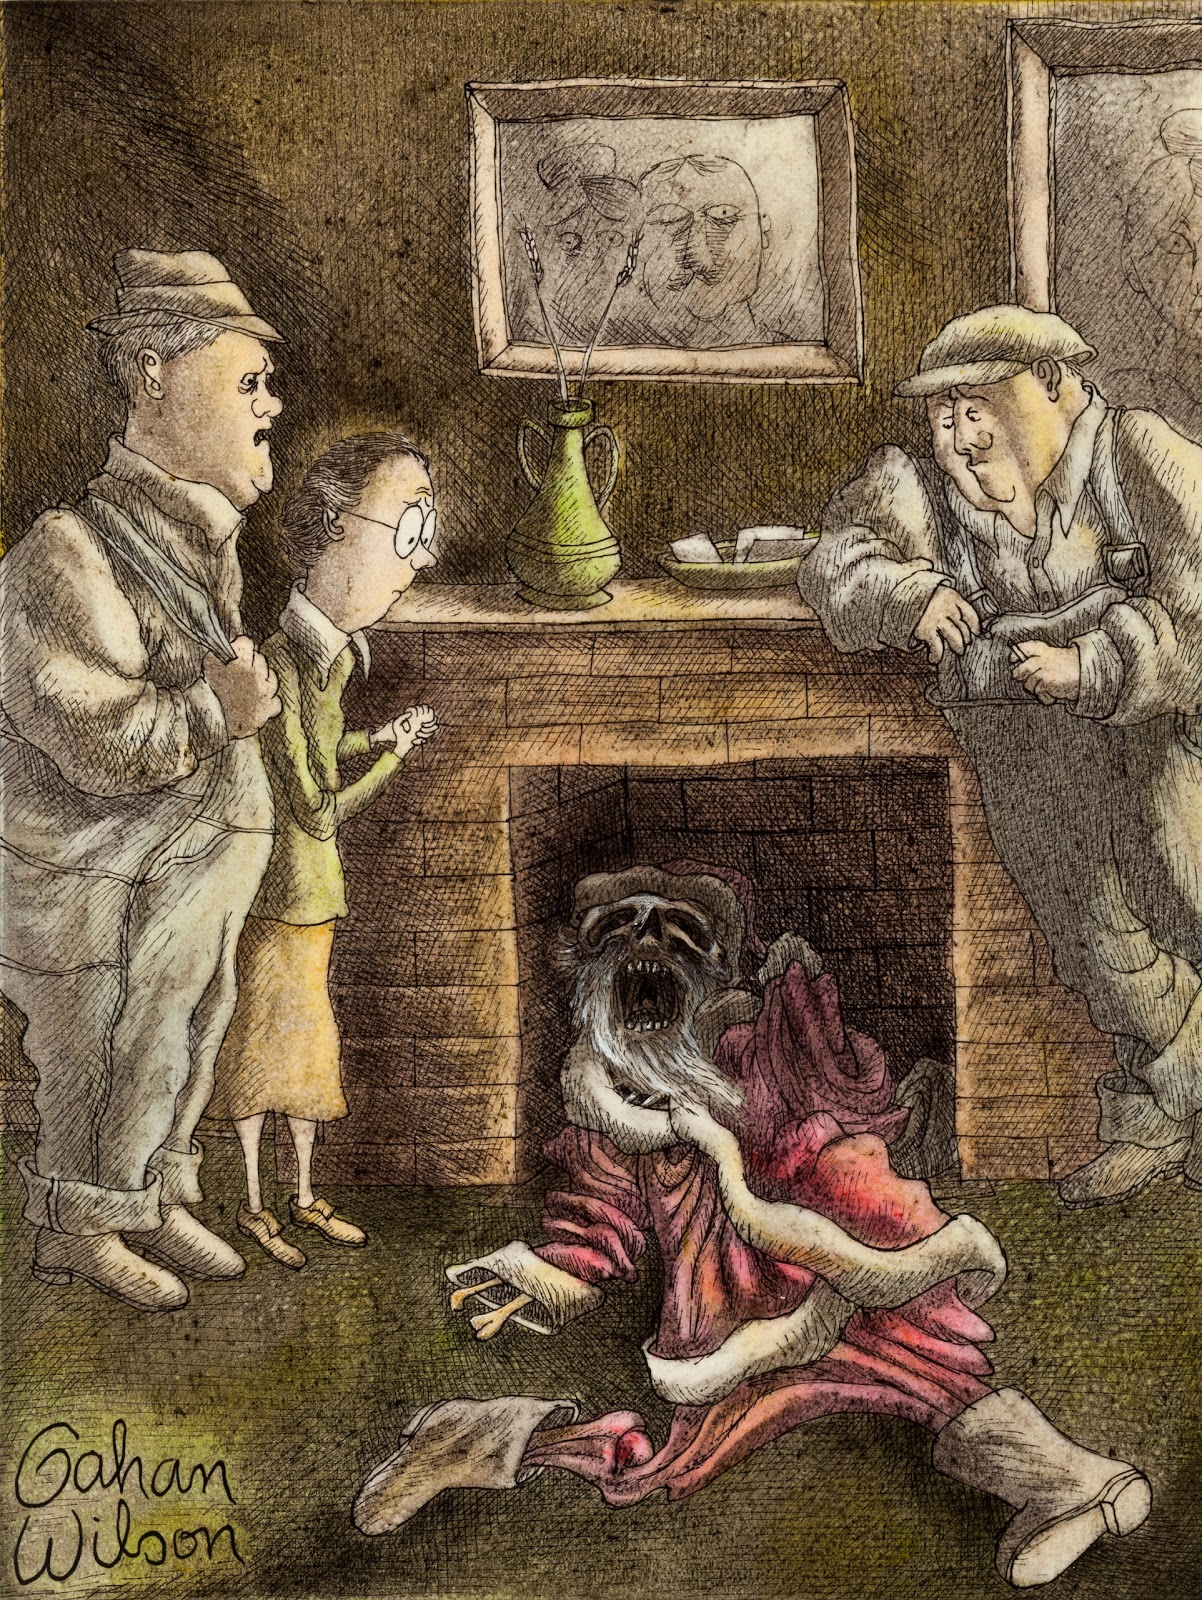 ... what's been clogging your chimney since last December, Miss Emmy